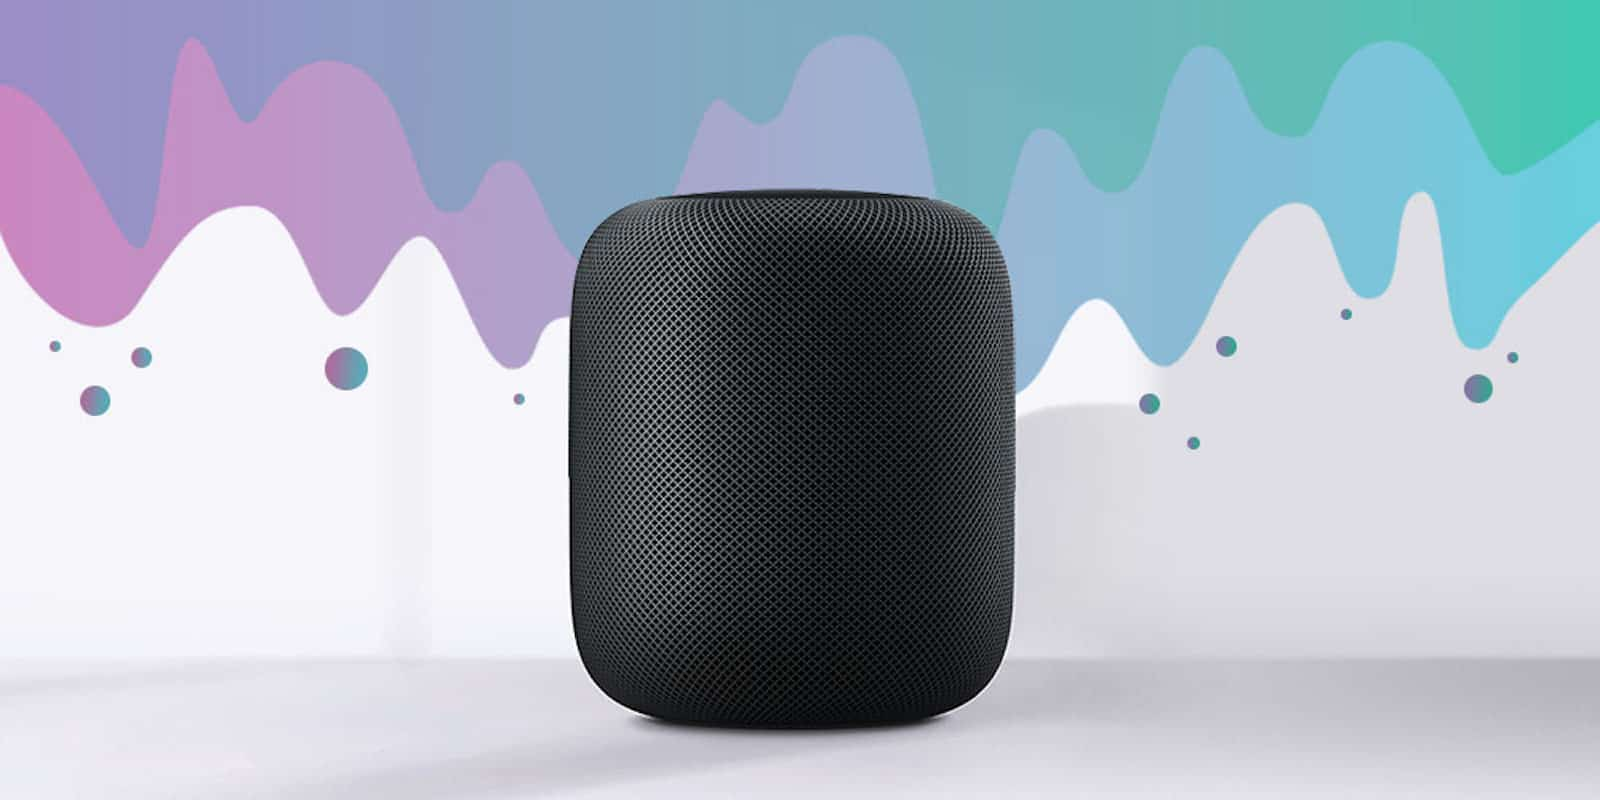 Don't drop the coin for a new HomePod until you've entered here to win one for free.